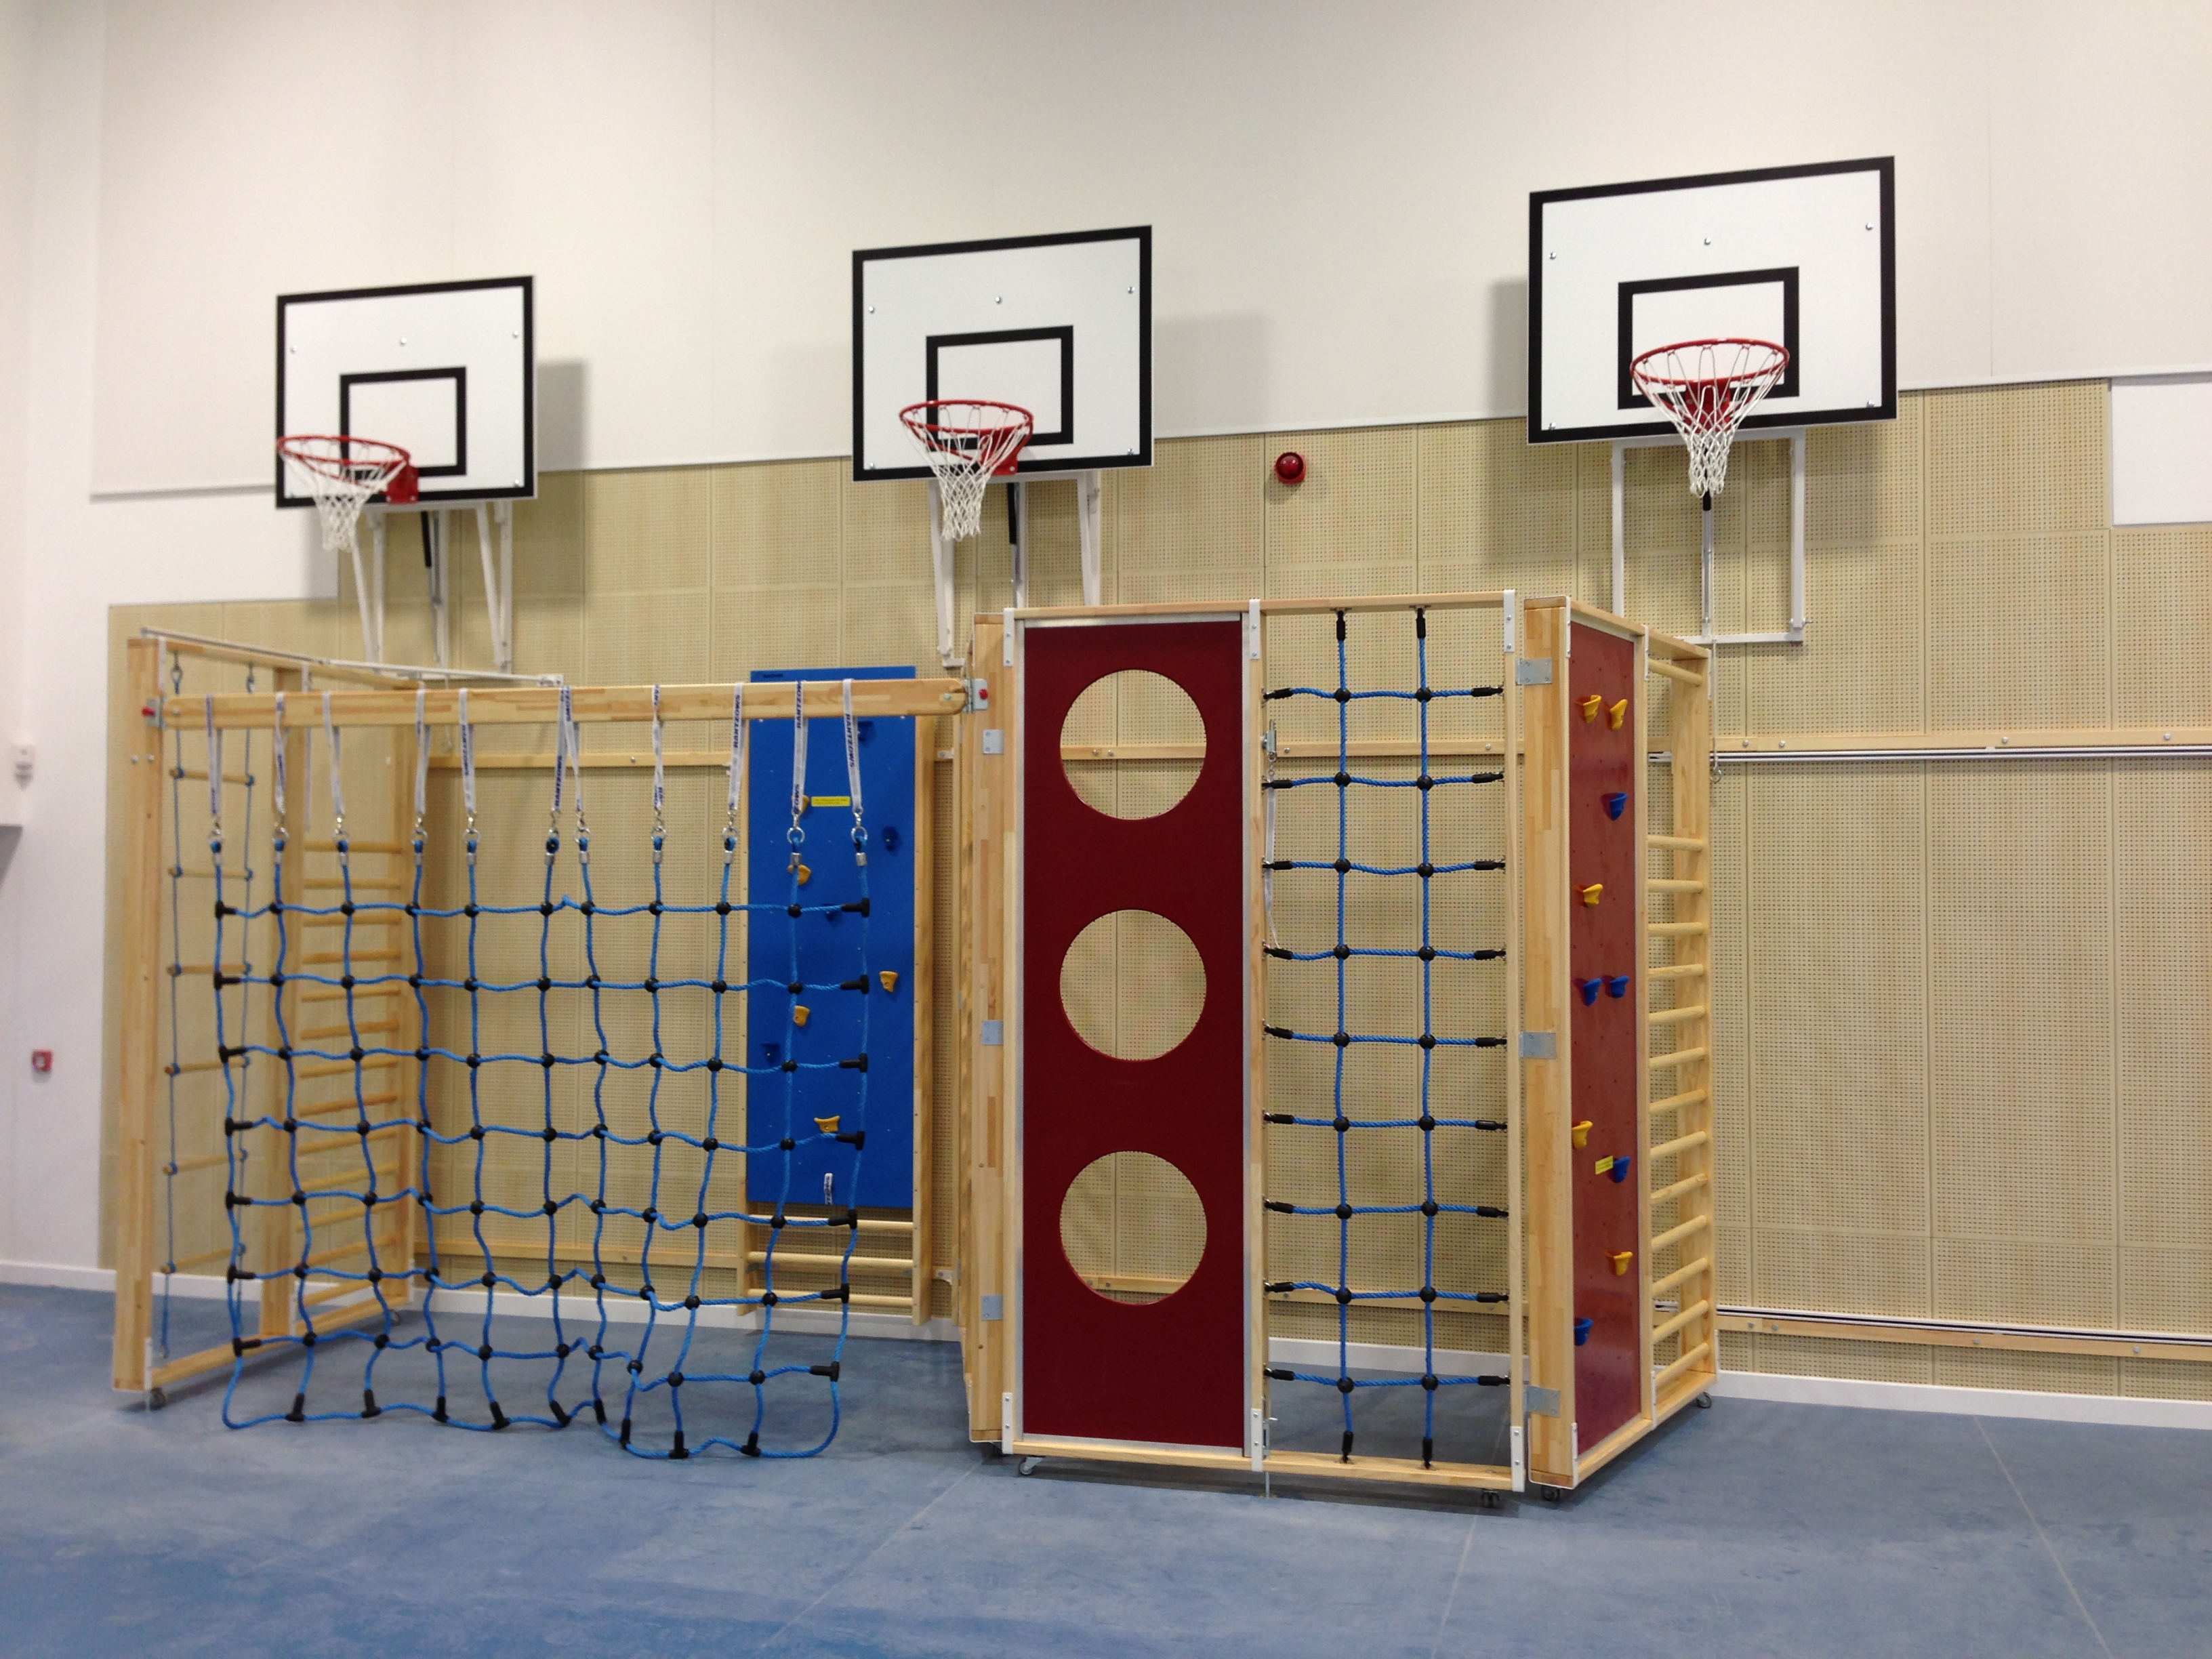 Adjustable Height Practice Basketball Goals installed above a Borgen Climbing Frame by Unisport